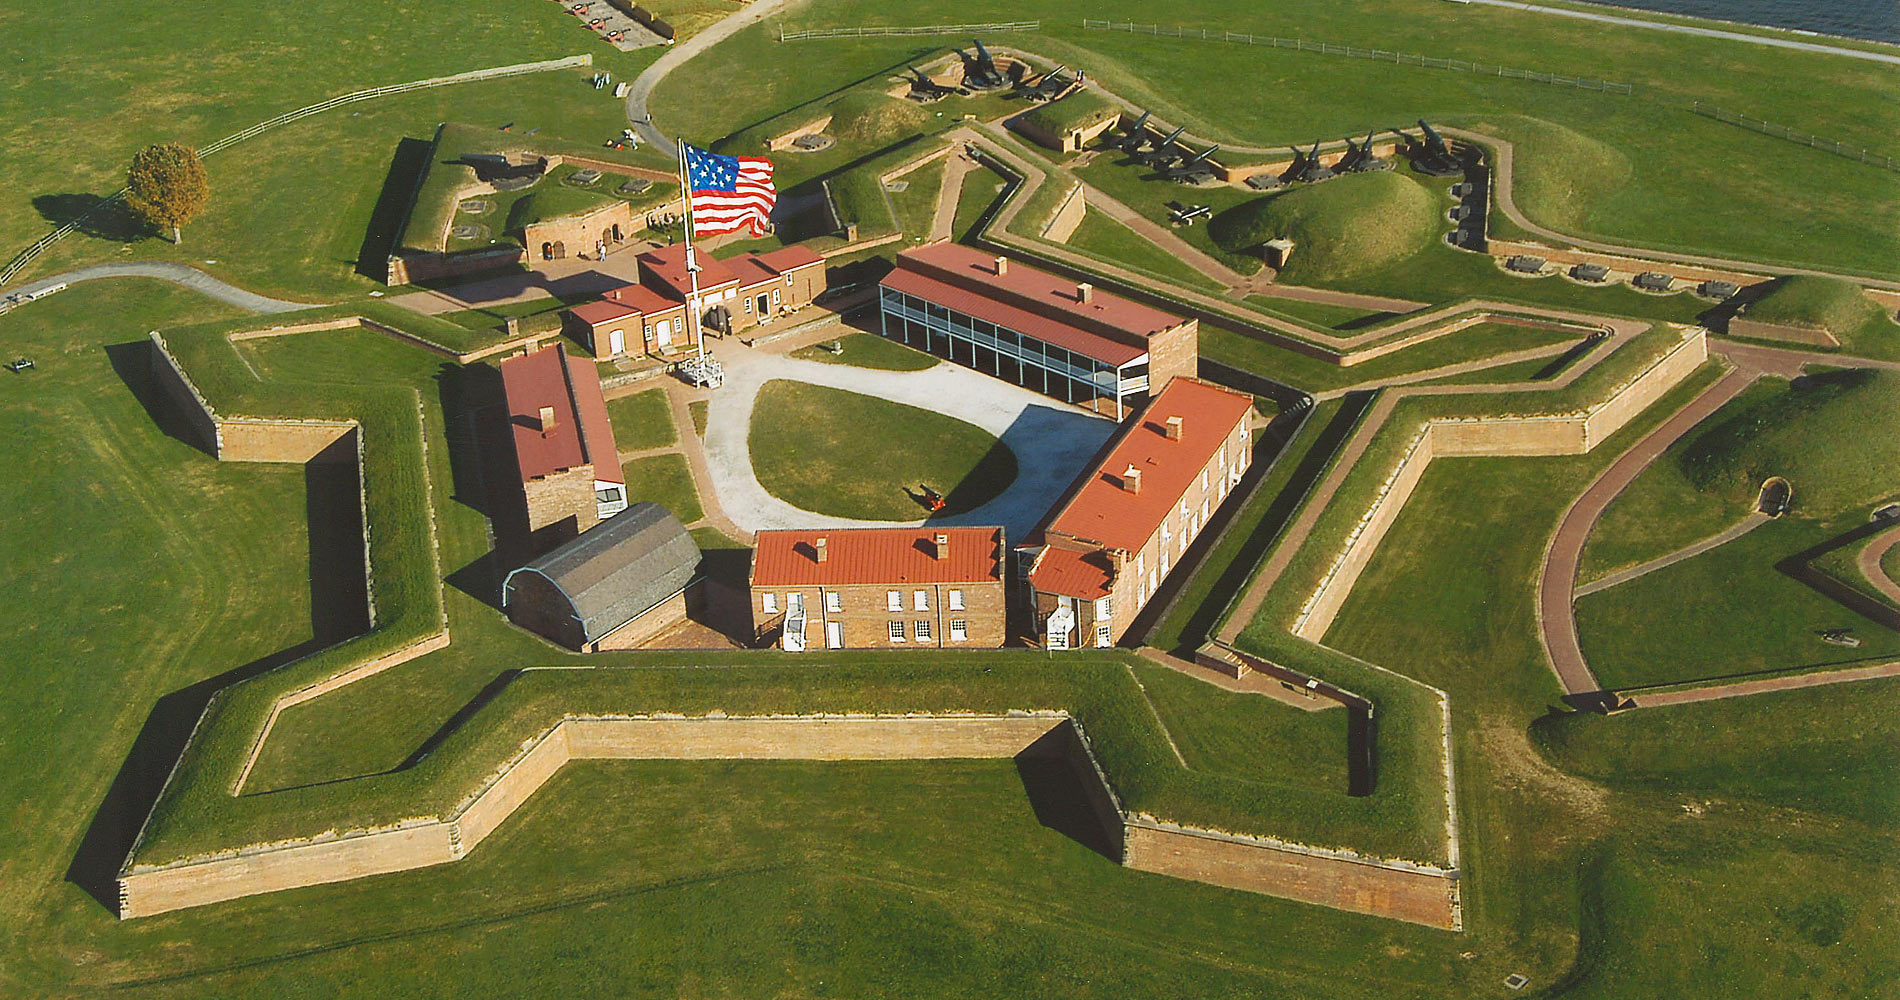 Fort McHenry is a gem - but it needs sunshine (much like a temperamental houseplant).